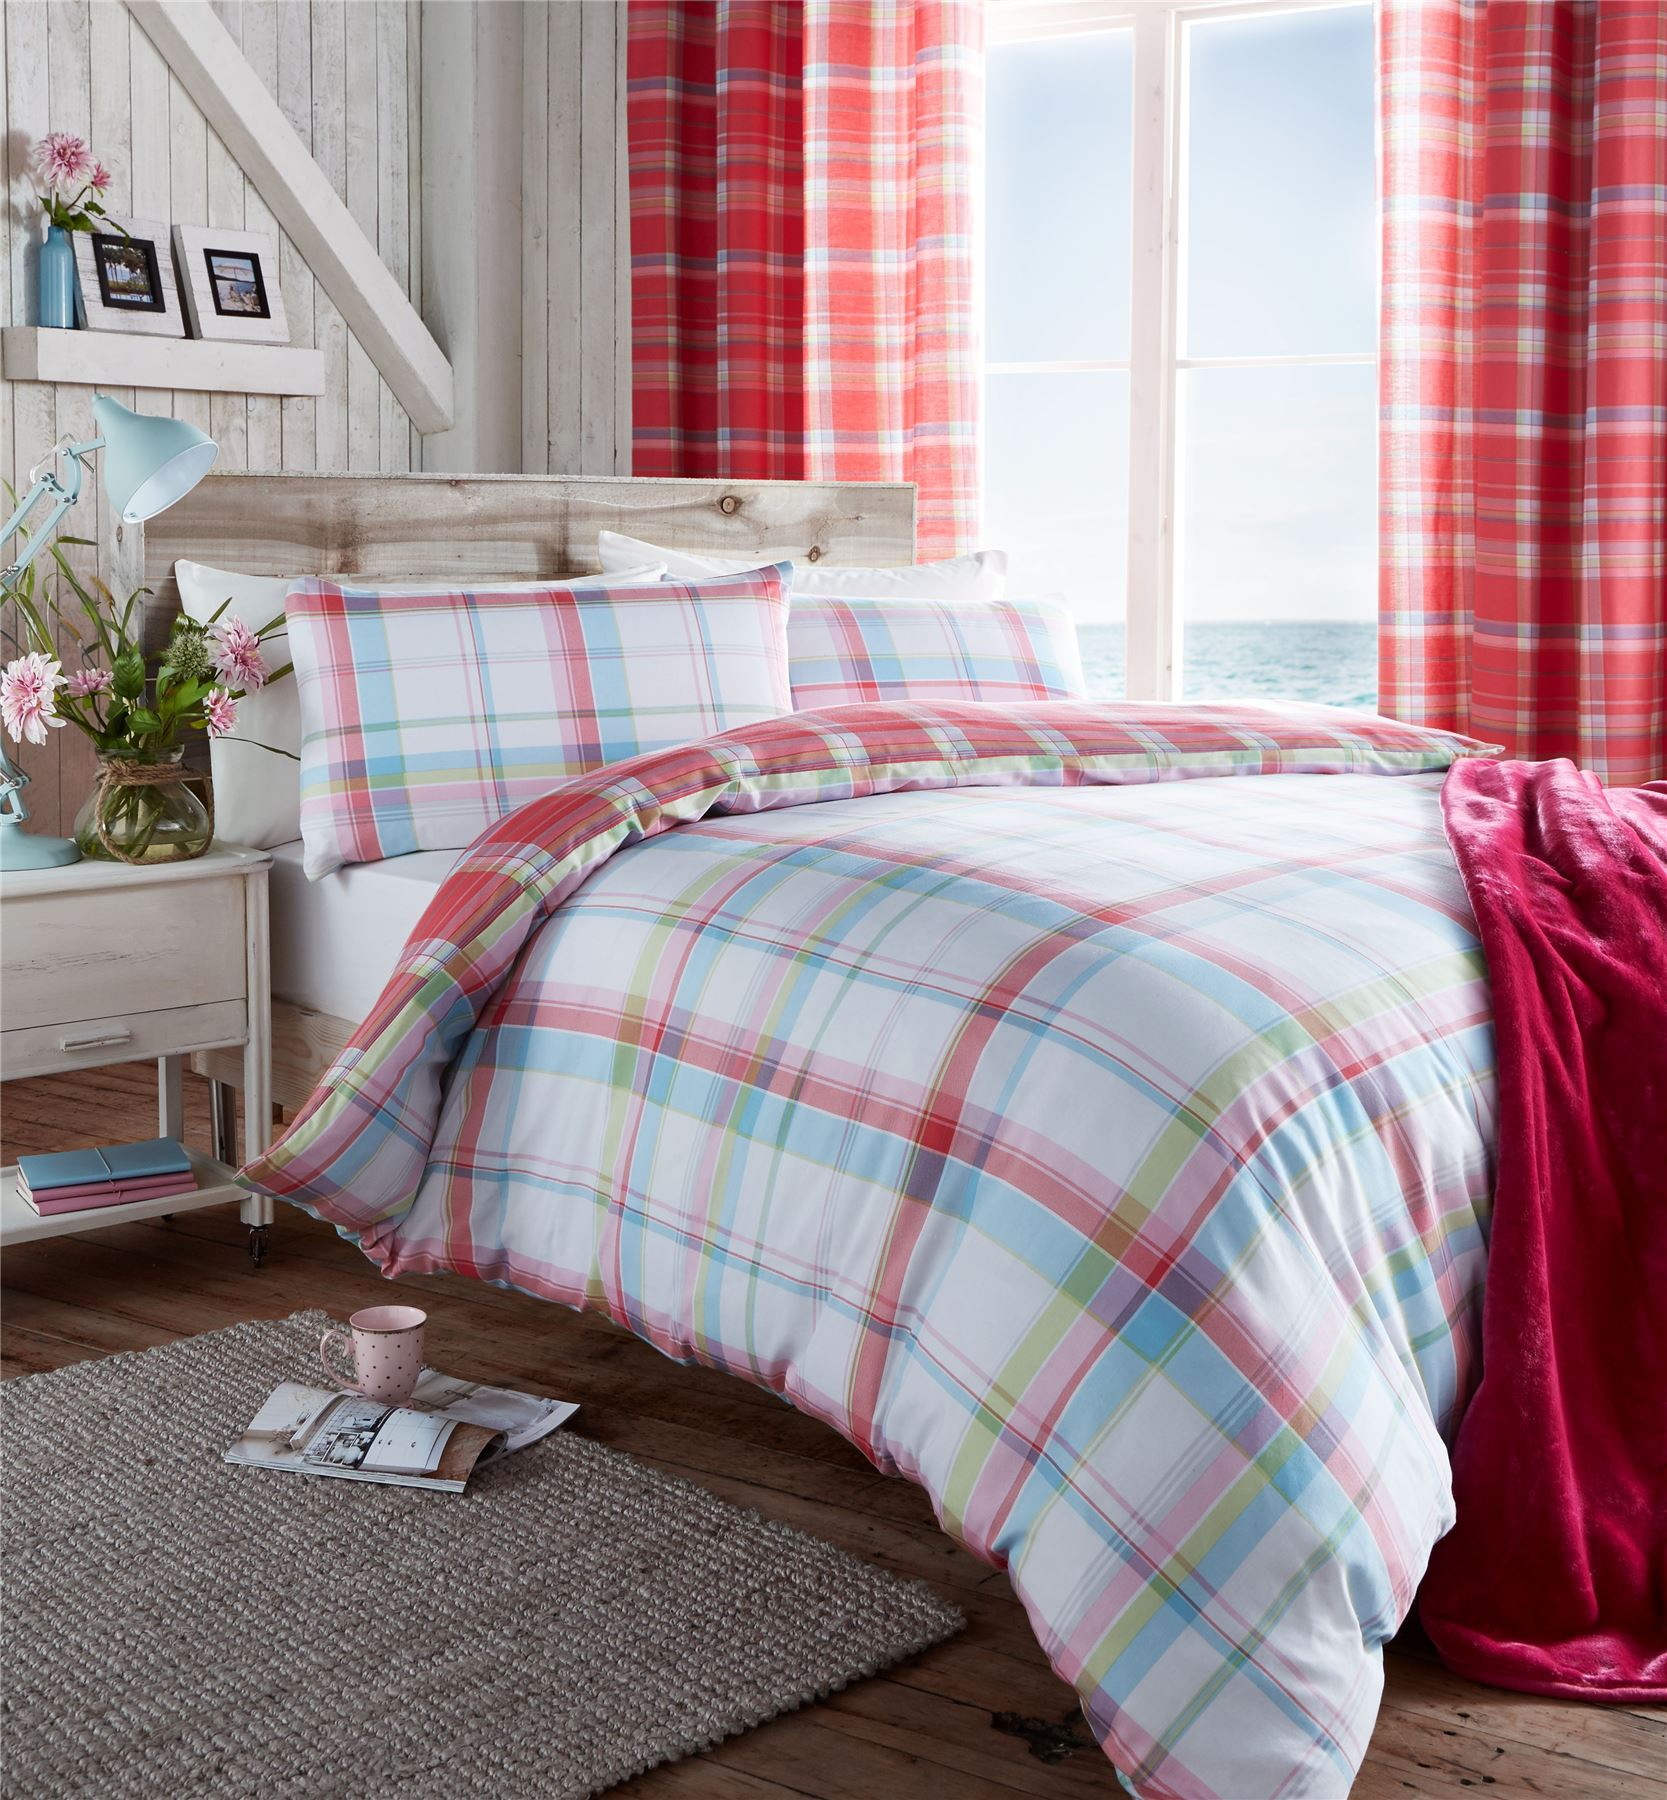 Plaid Duvet Covers: Find a duvet to create a new style for your room from gothicphotos.ga Your Online Fashion Bedding Store! Get 5% in rewards with Club O!